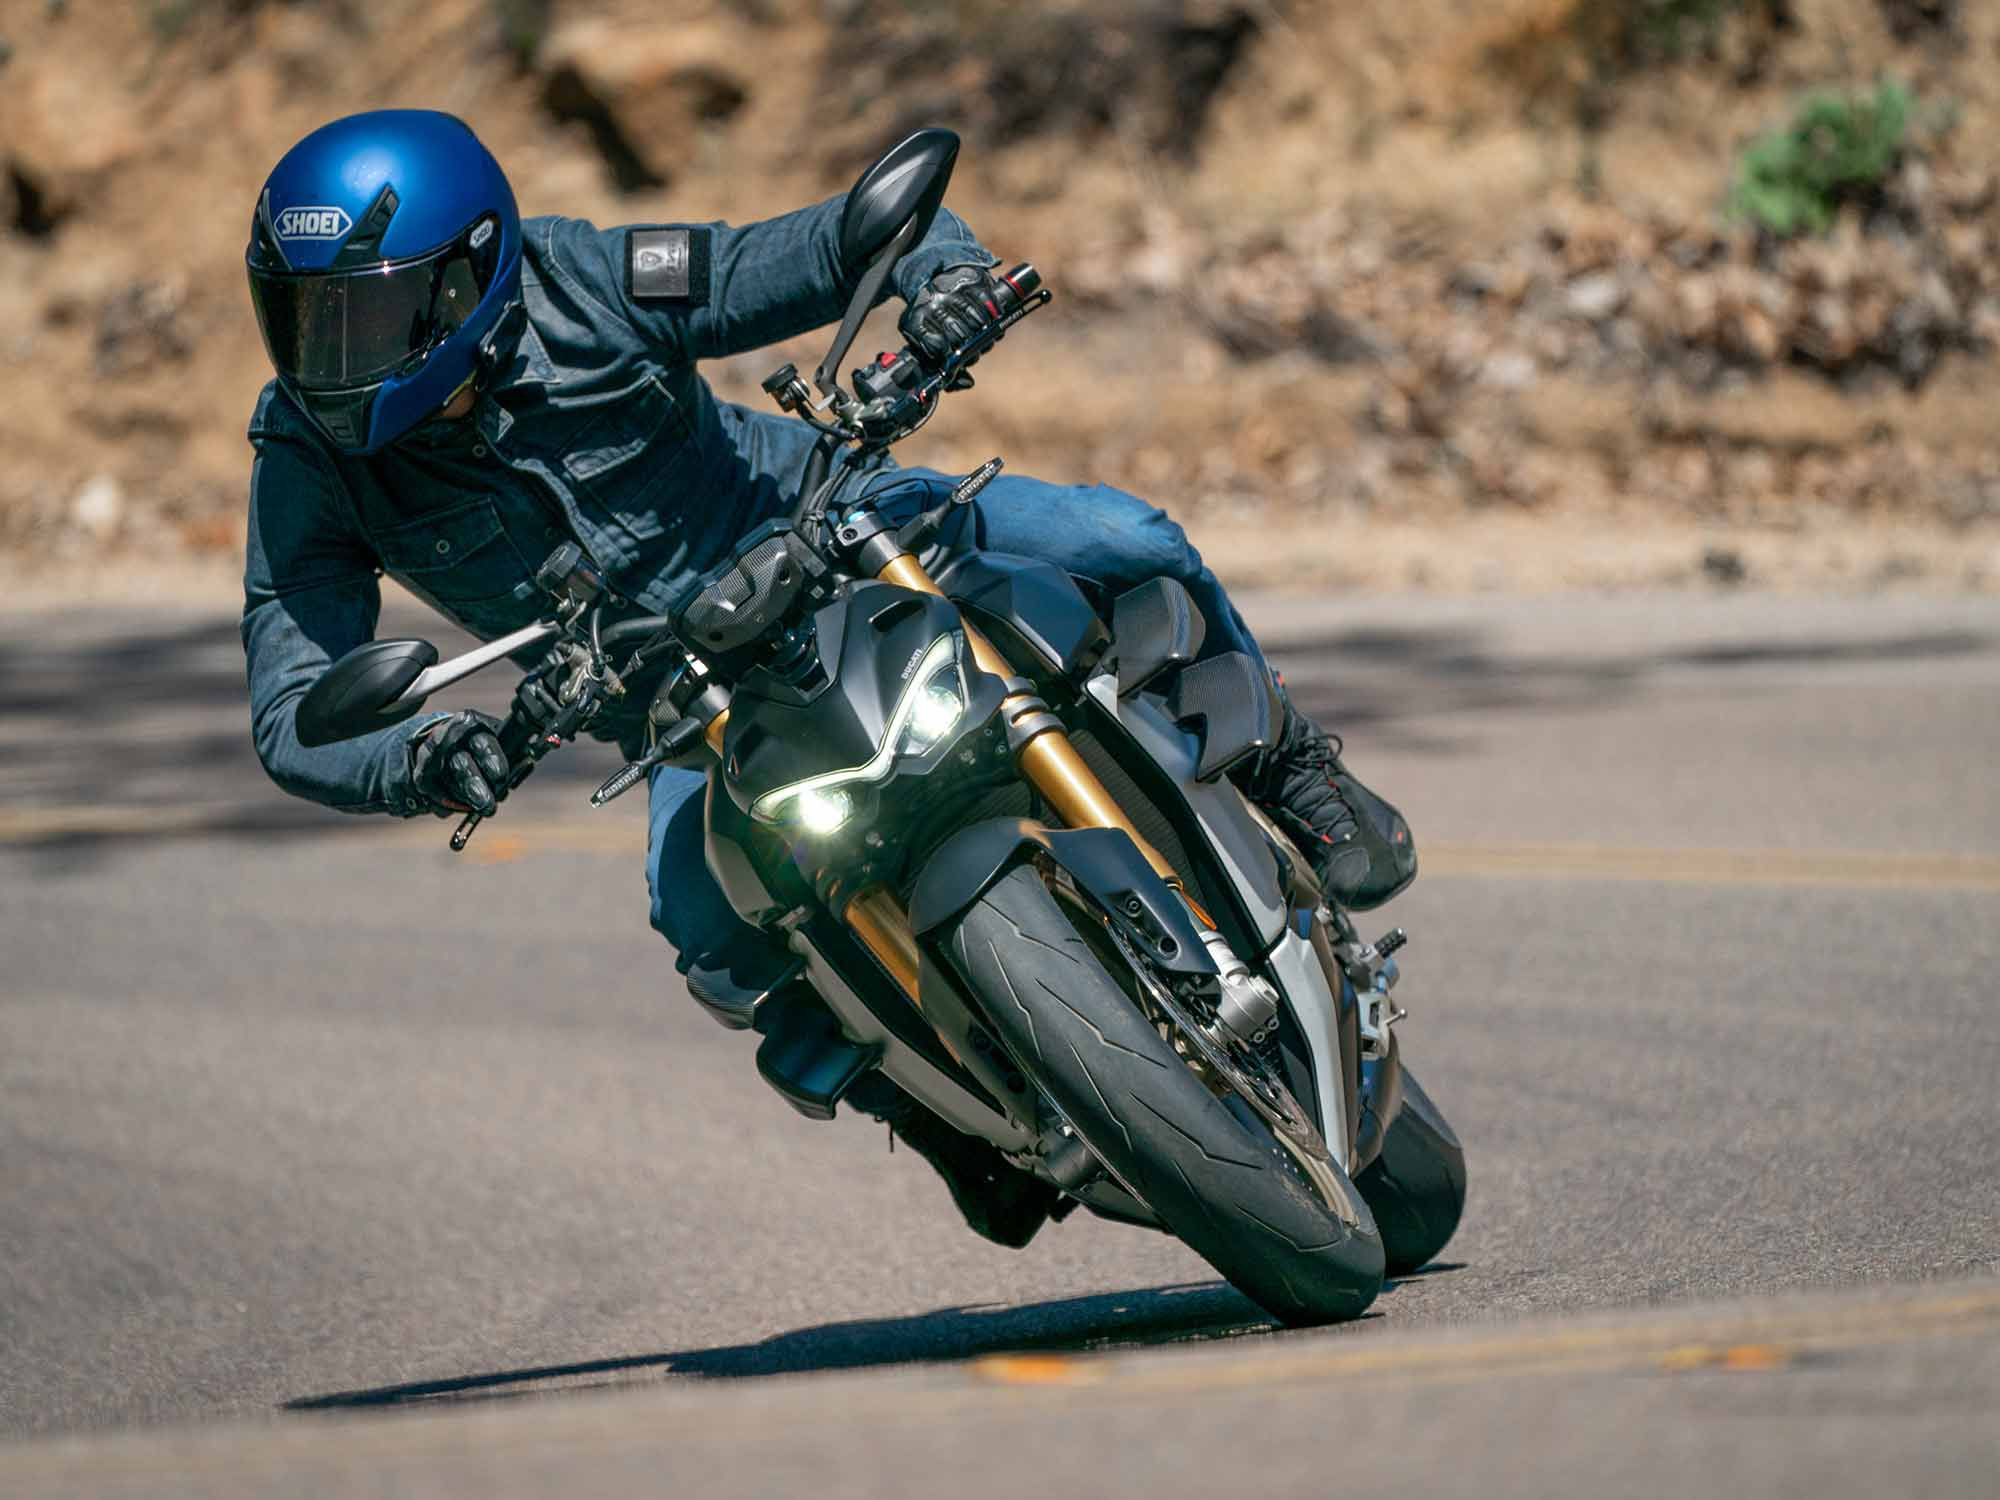 2021 Ducati Streetfighter V4 S MC Commute Review Gallery